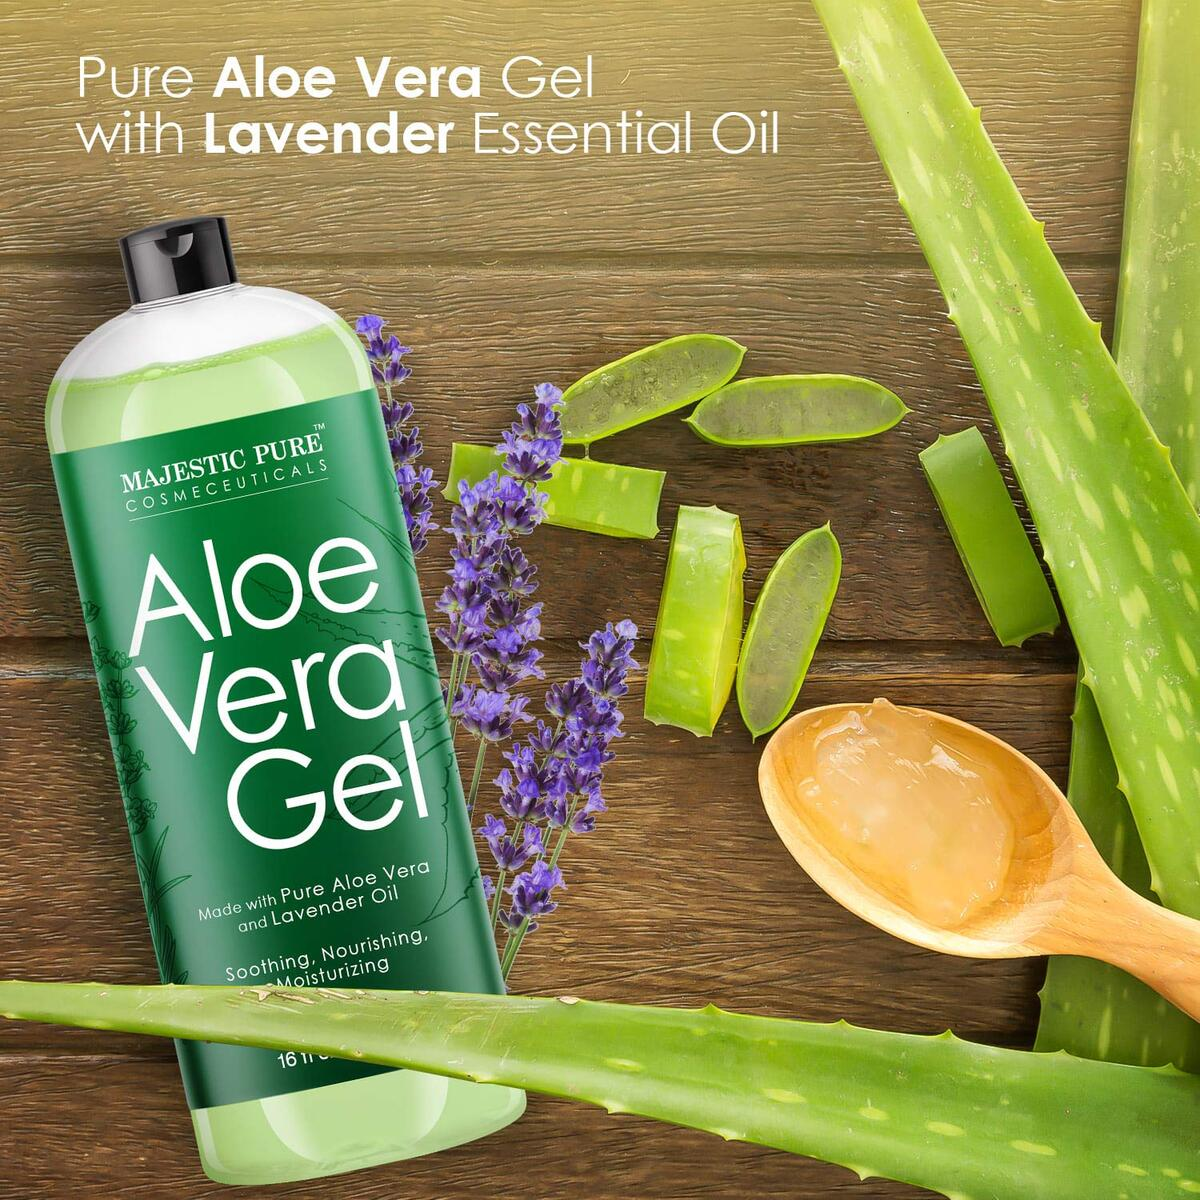 Pure Aloe Vera Gel with Lavender Oil, Soothes, Moisturizes, & Nourishes Skin & Hair, Soothes Sunburn, Eczema, Small Cuts & Bites, 16 fl oz